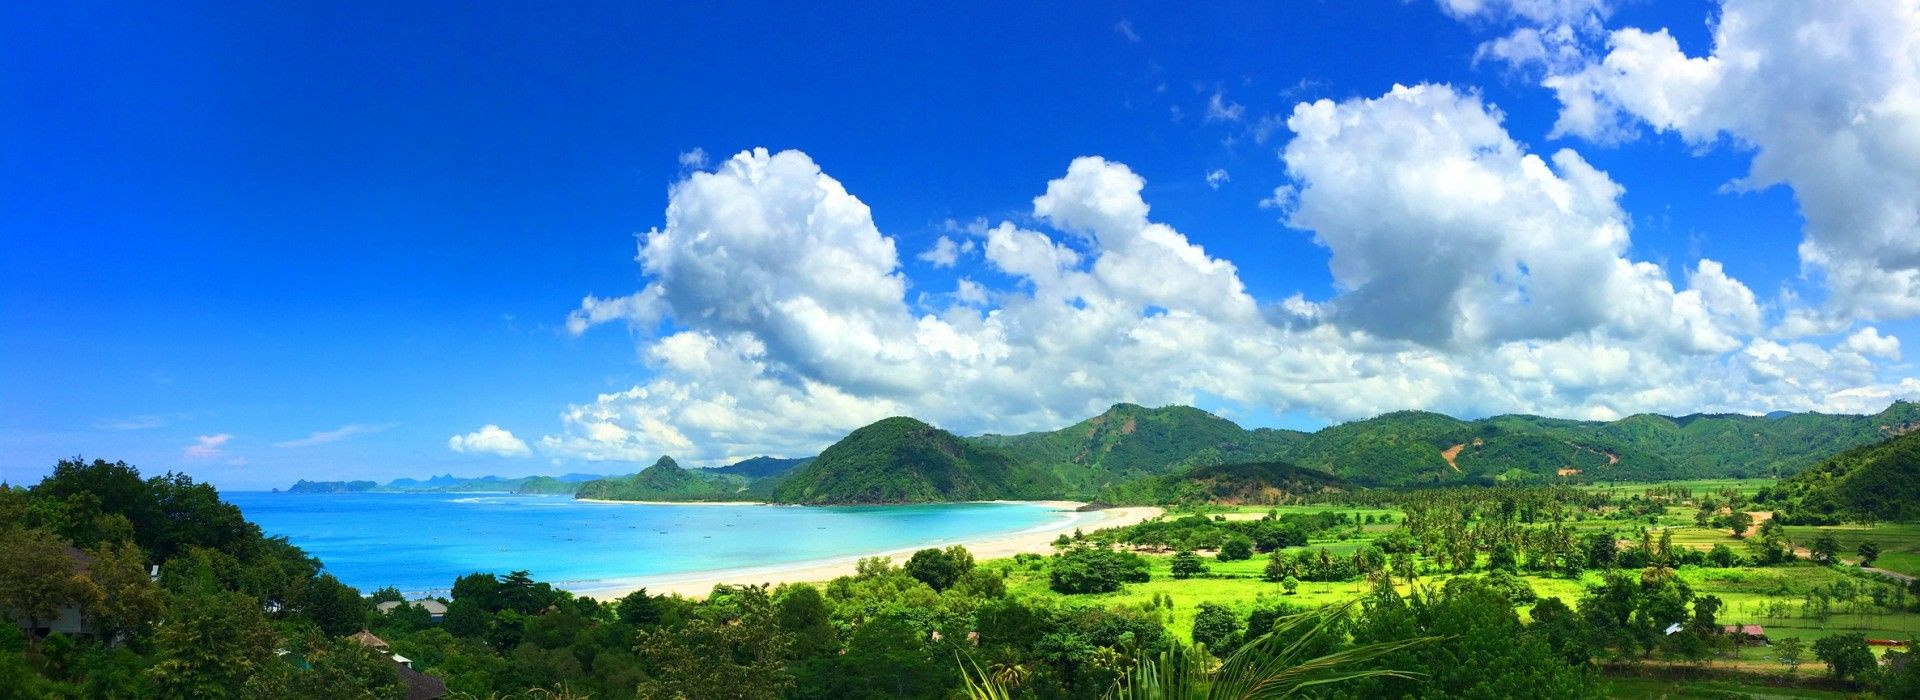 View of beach and lush jungle in Lombok Indonesia